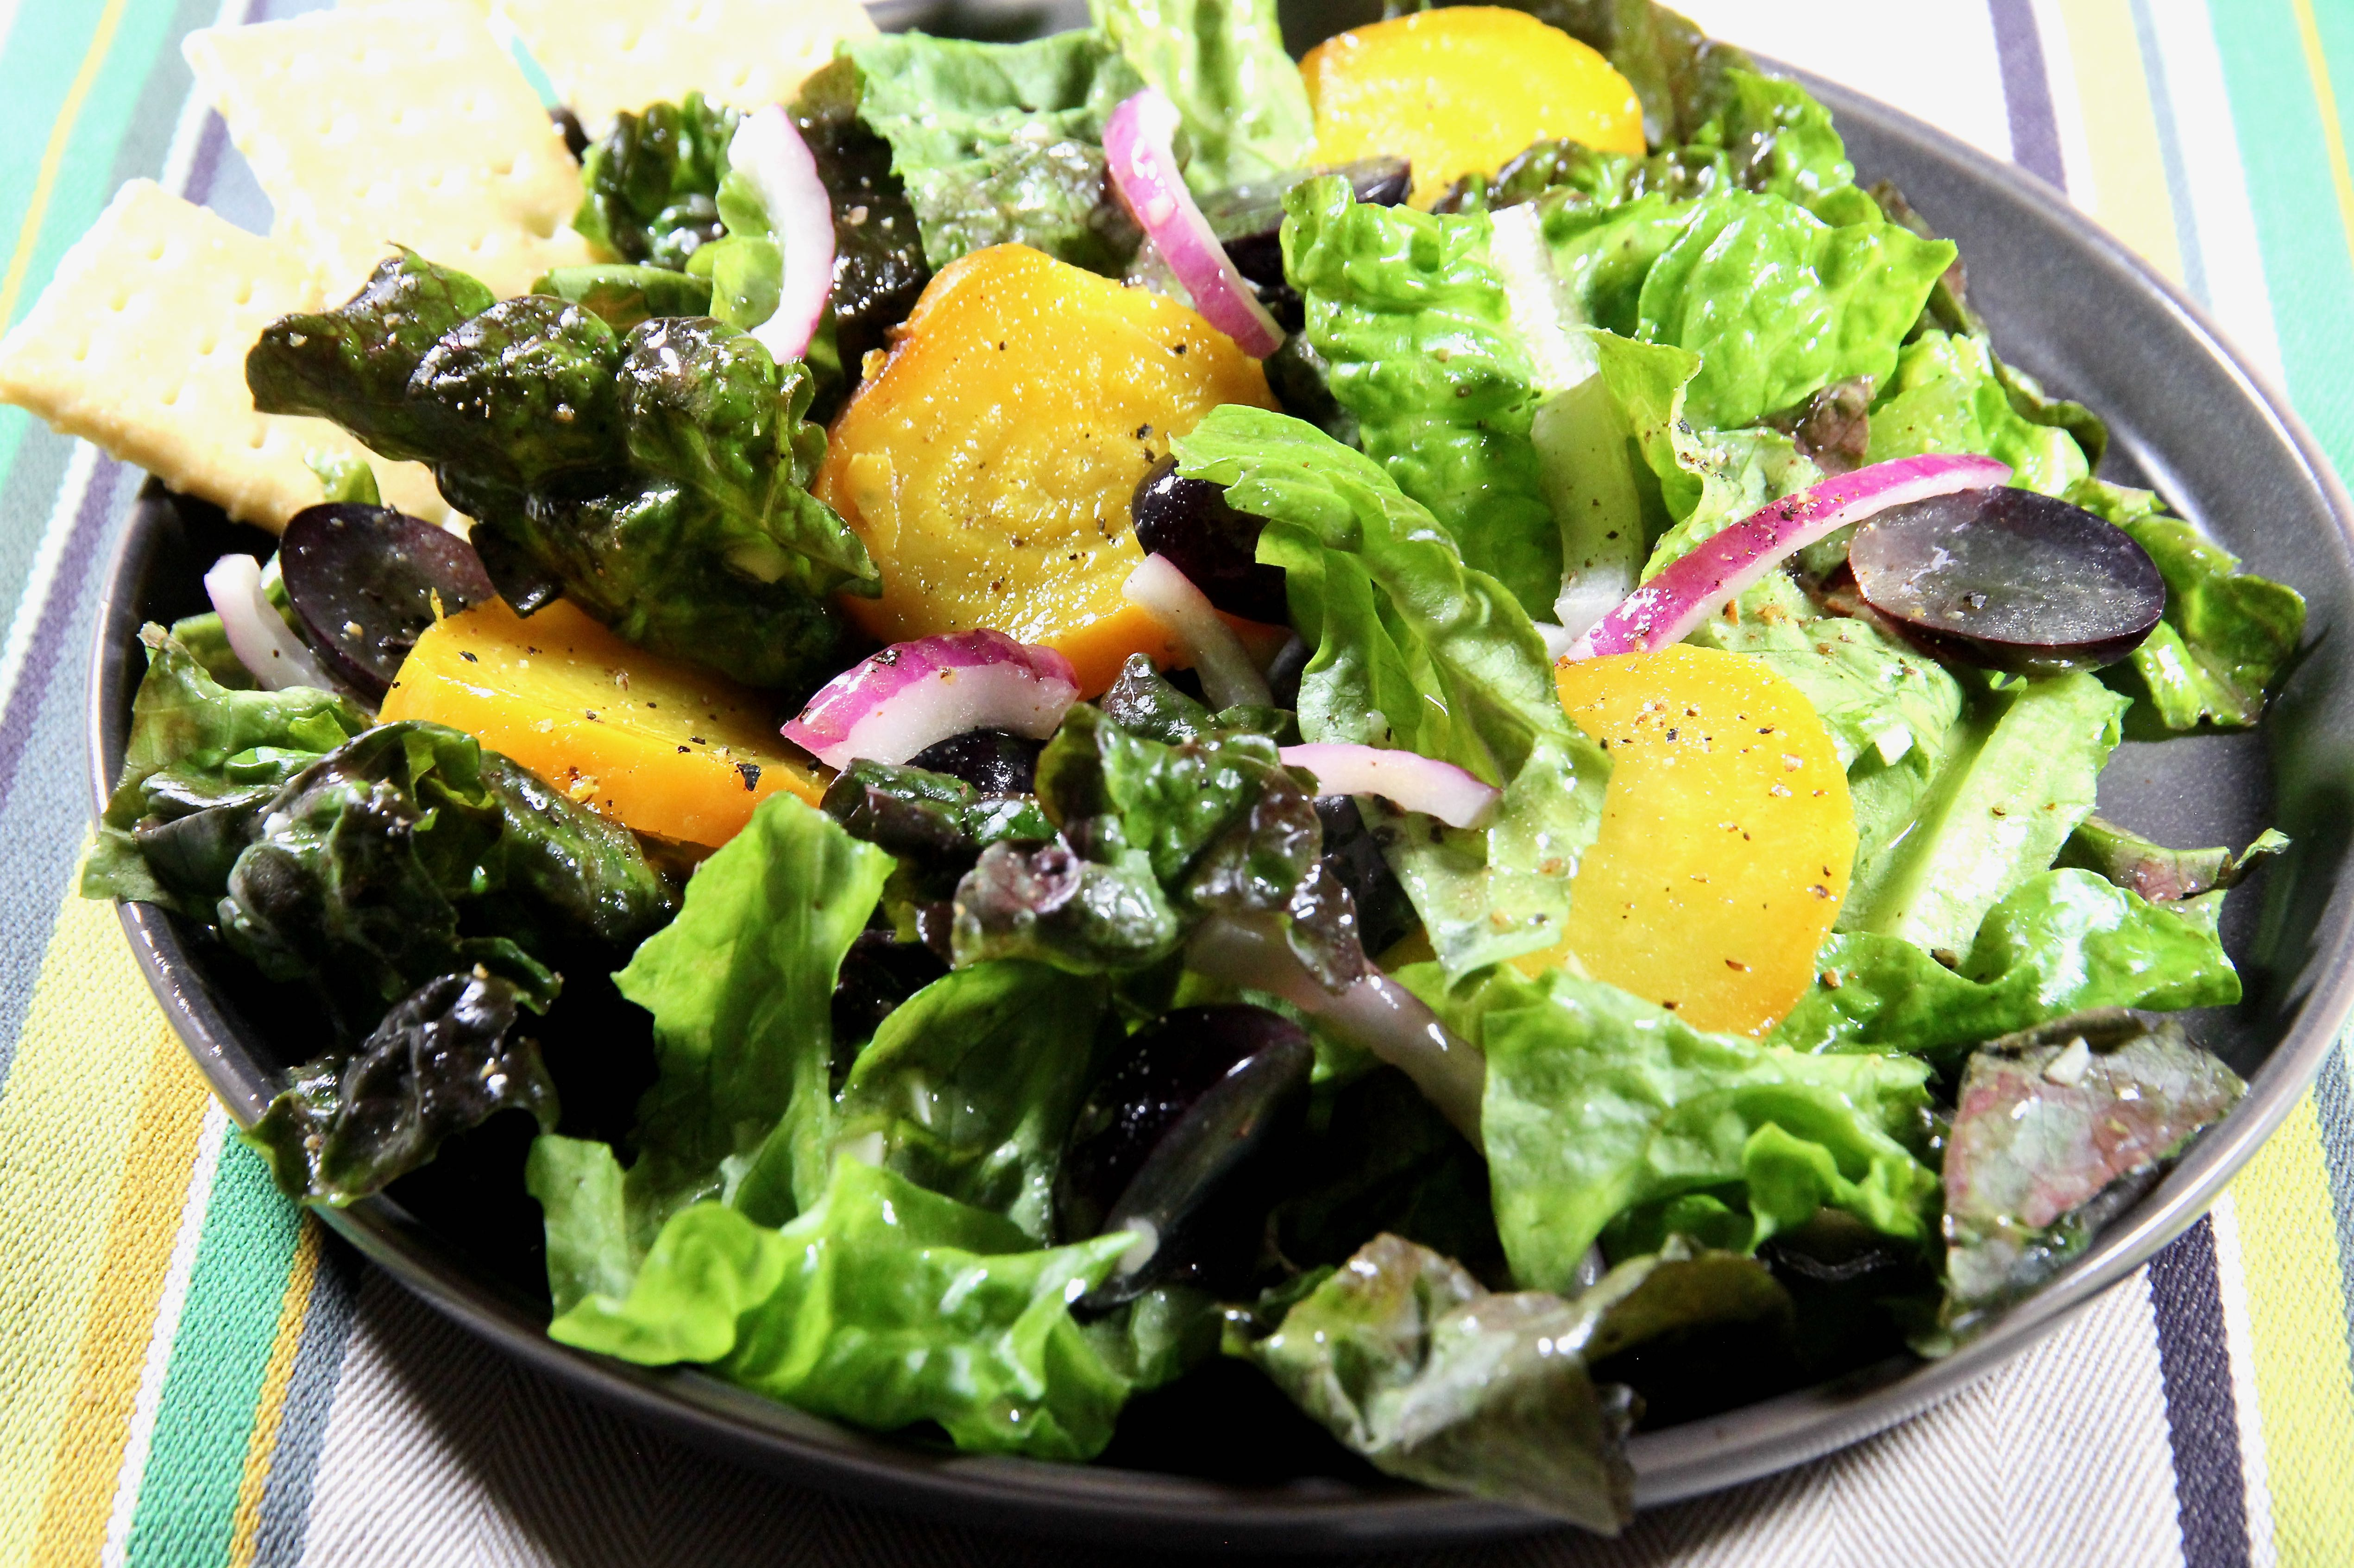 Red Leaf Lettuce Salad with Golden Beets and Grapes